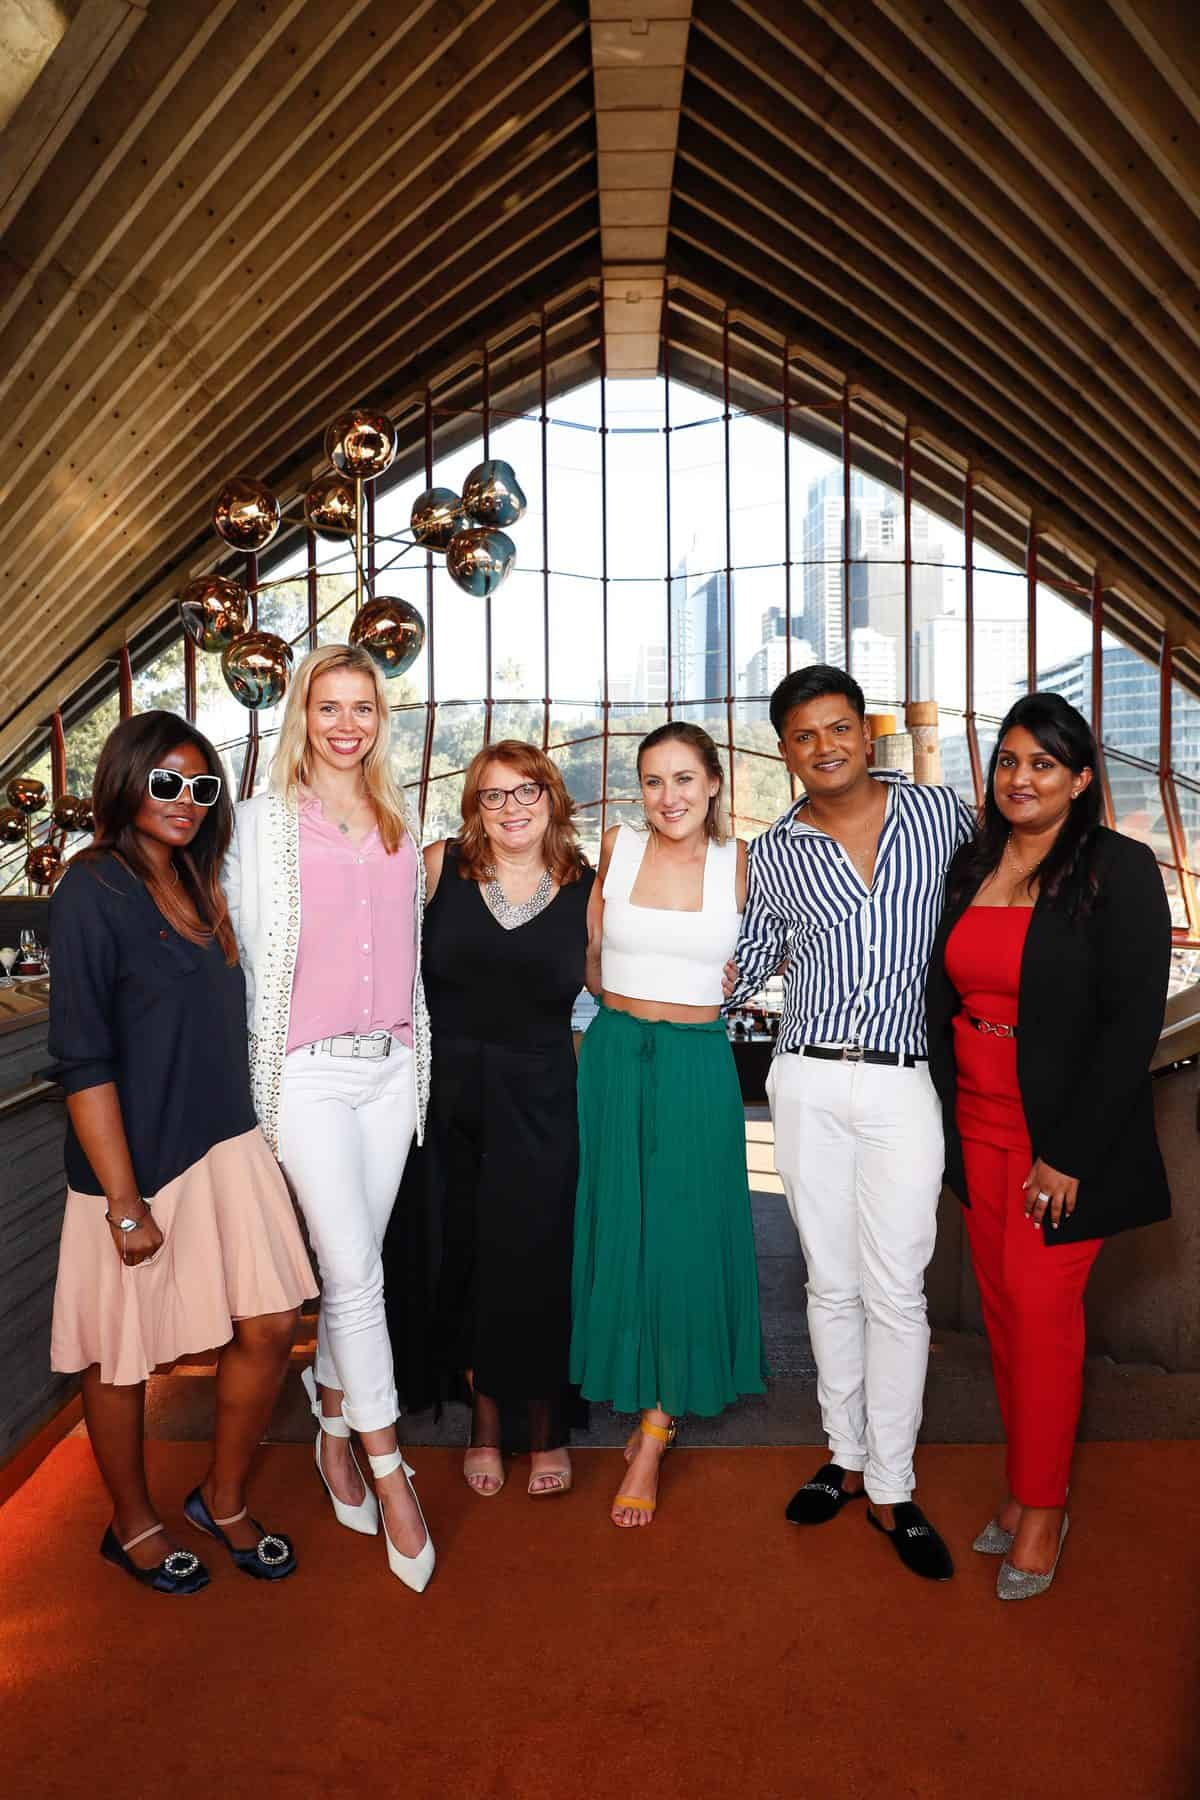 Camille Reed, Melissa Shea, Sophie Muir, Kristian Chase and Sneha Andani attend the Fashion Mingle Australia VIP Luncheon at Bennelong Restaurant Sydney Opera House on May 14, 2019 in Sydney, Australia. (Photo by Hanna Lassen/Getty Images for Fashion Mingle)